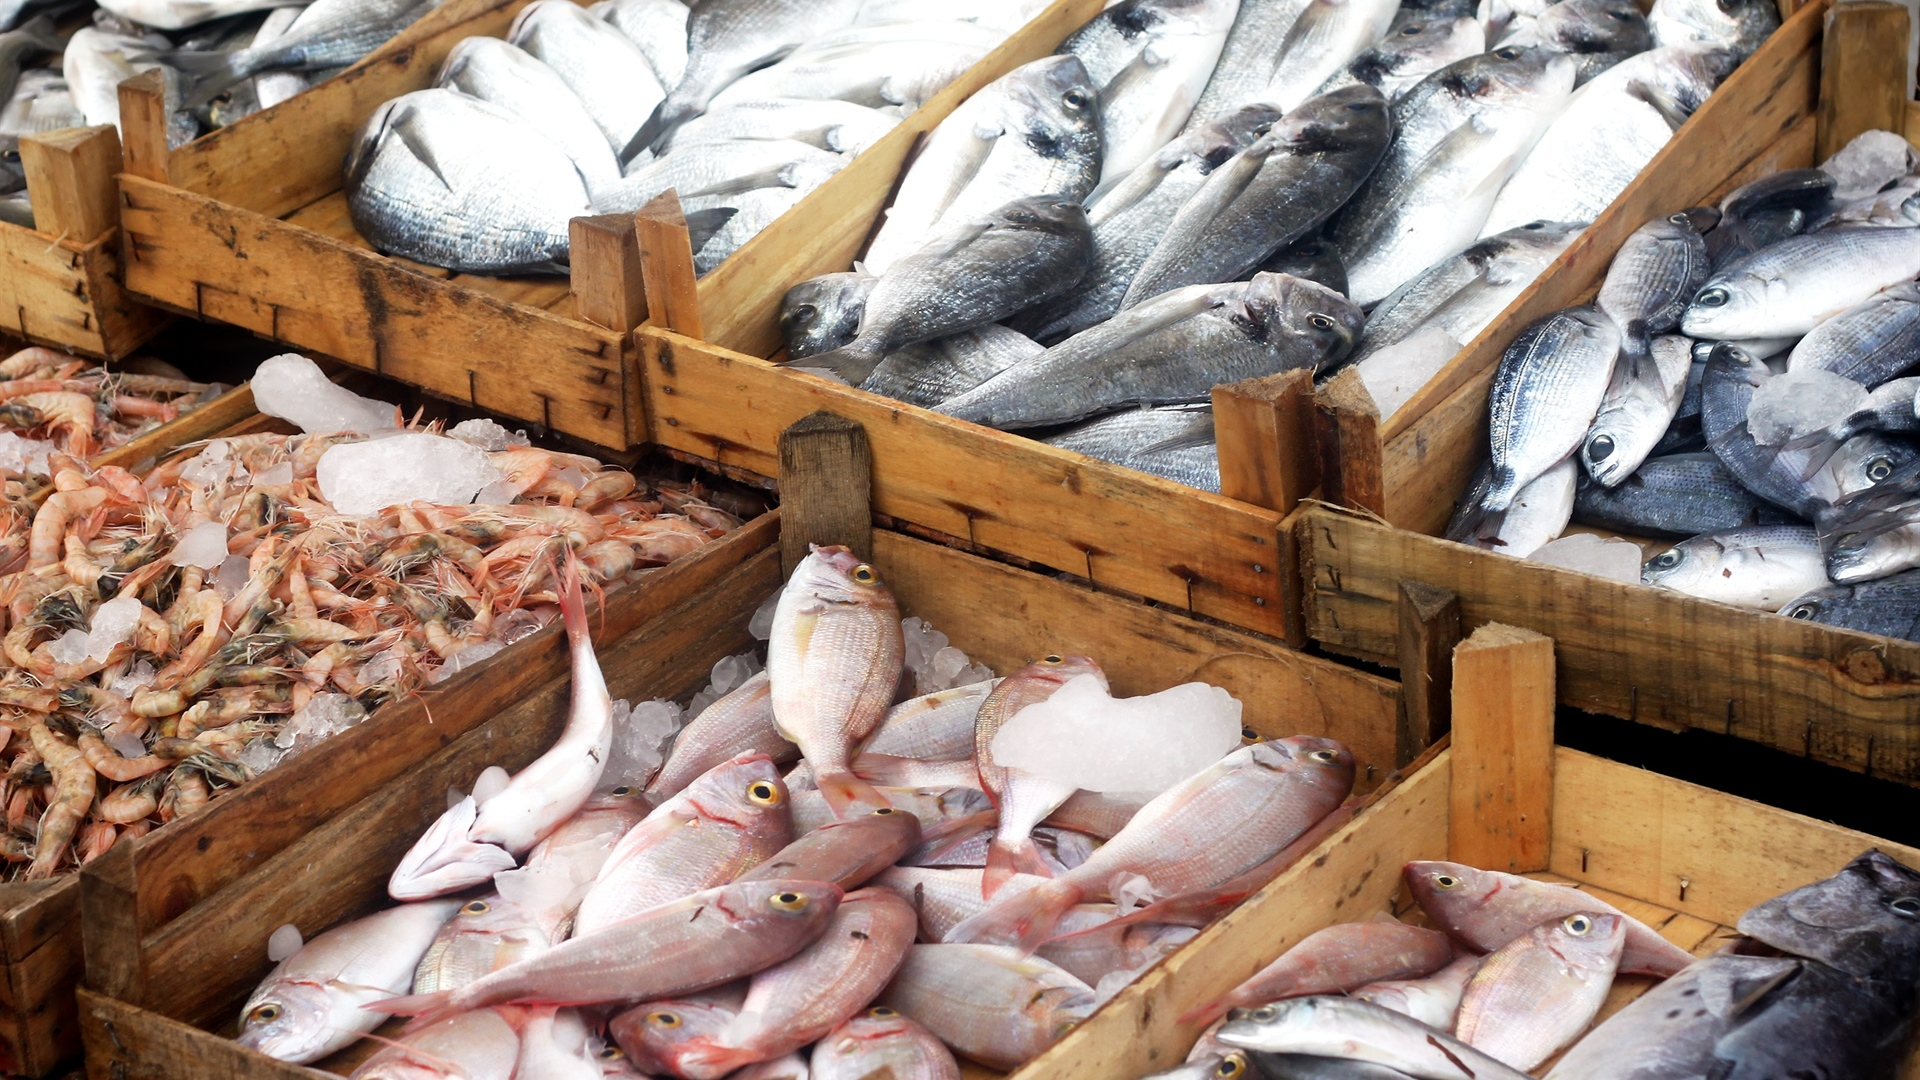 Illegal, Unregulated, and Unreported Fishing and Seafood